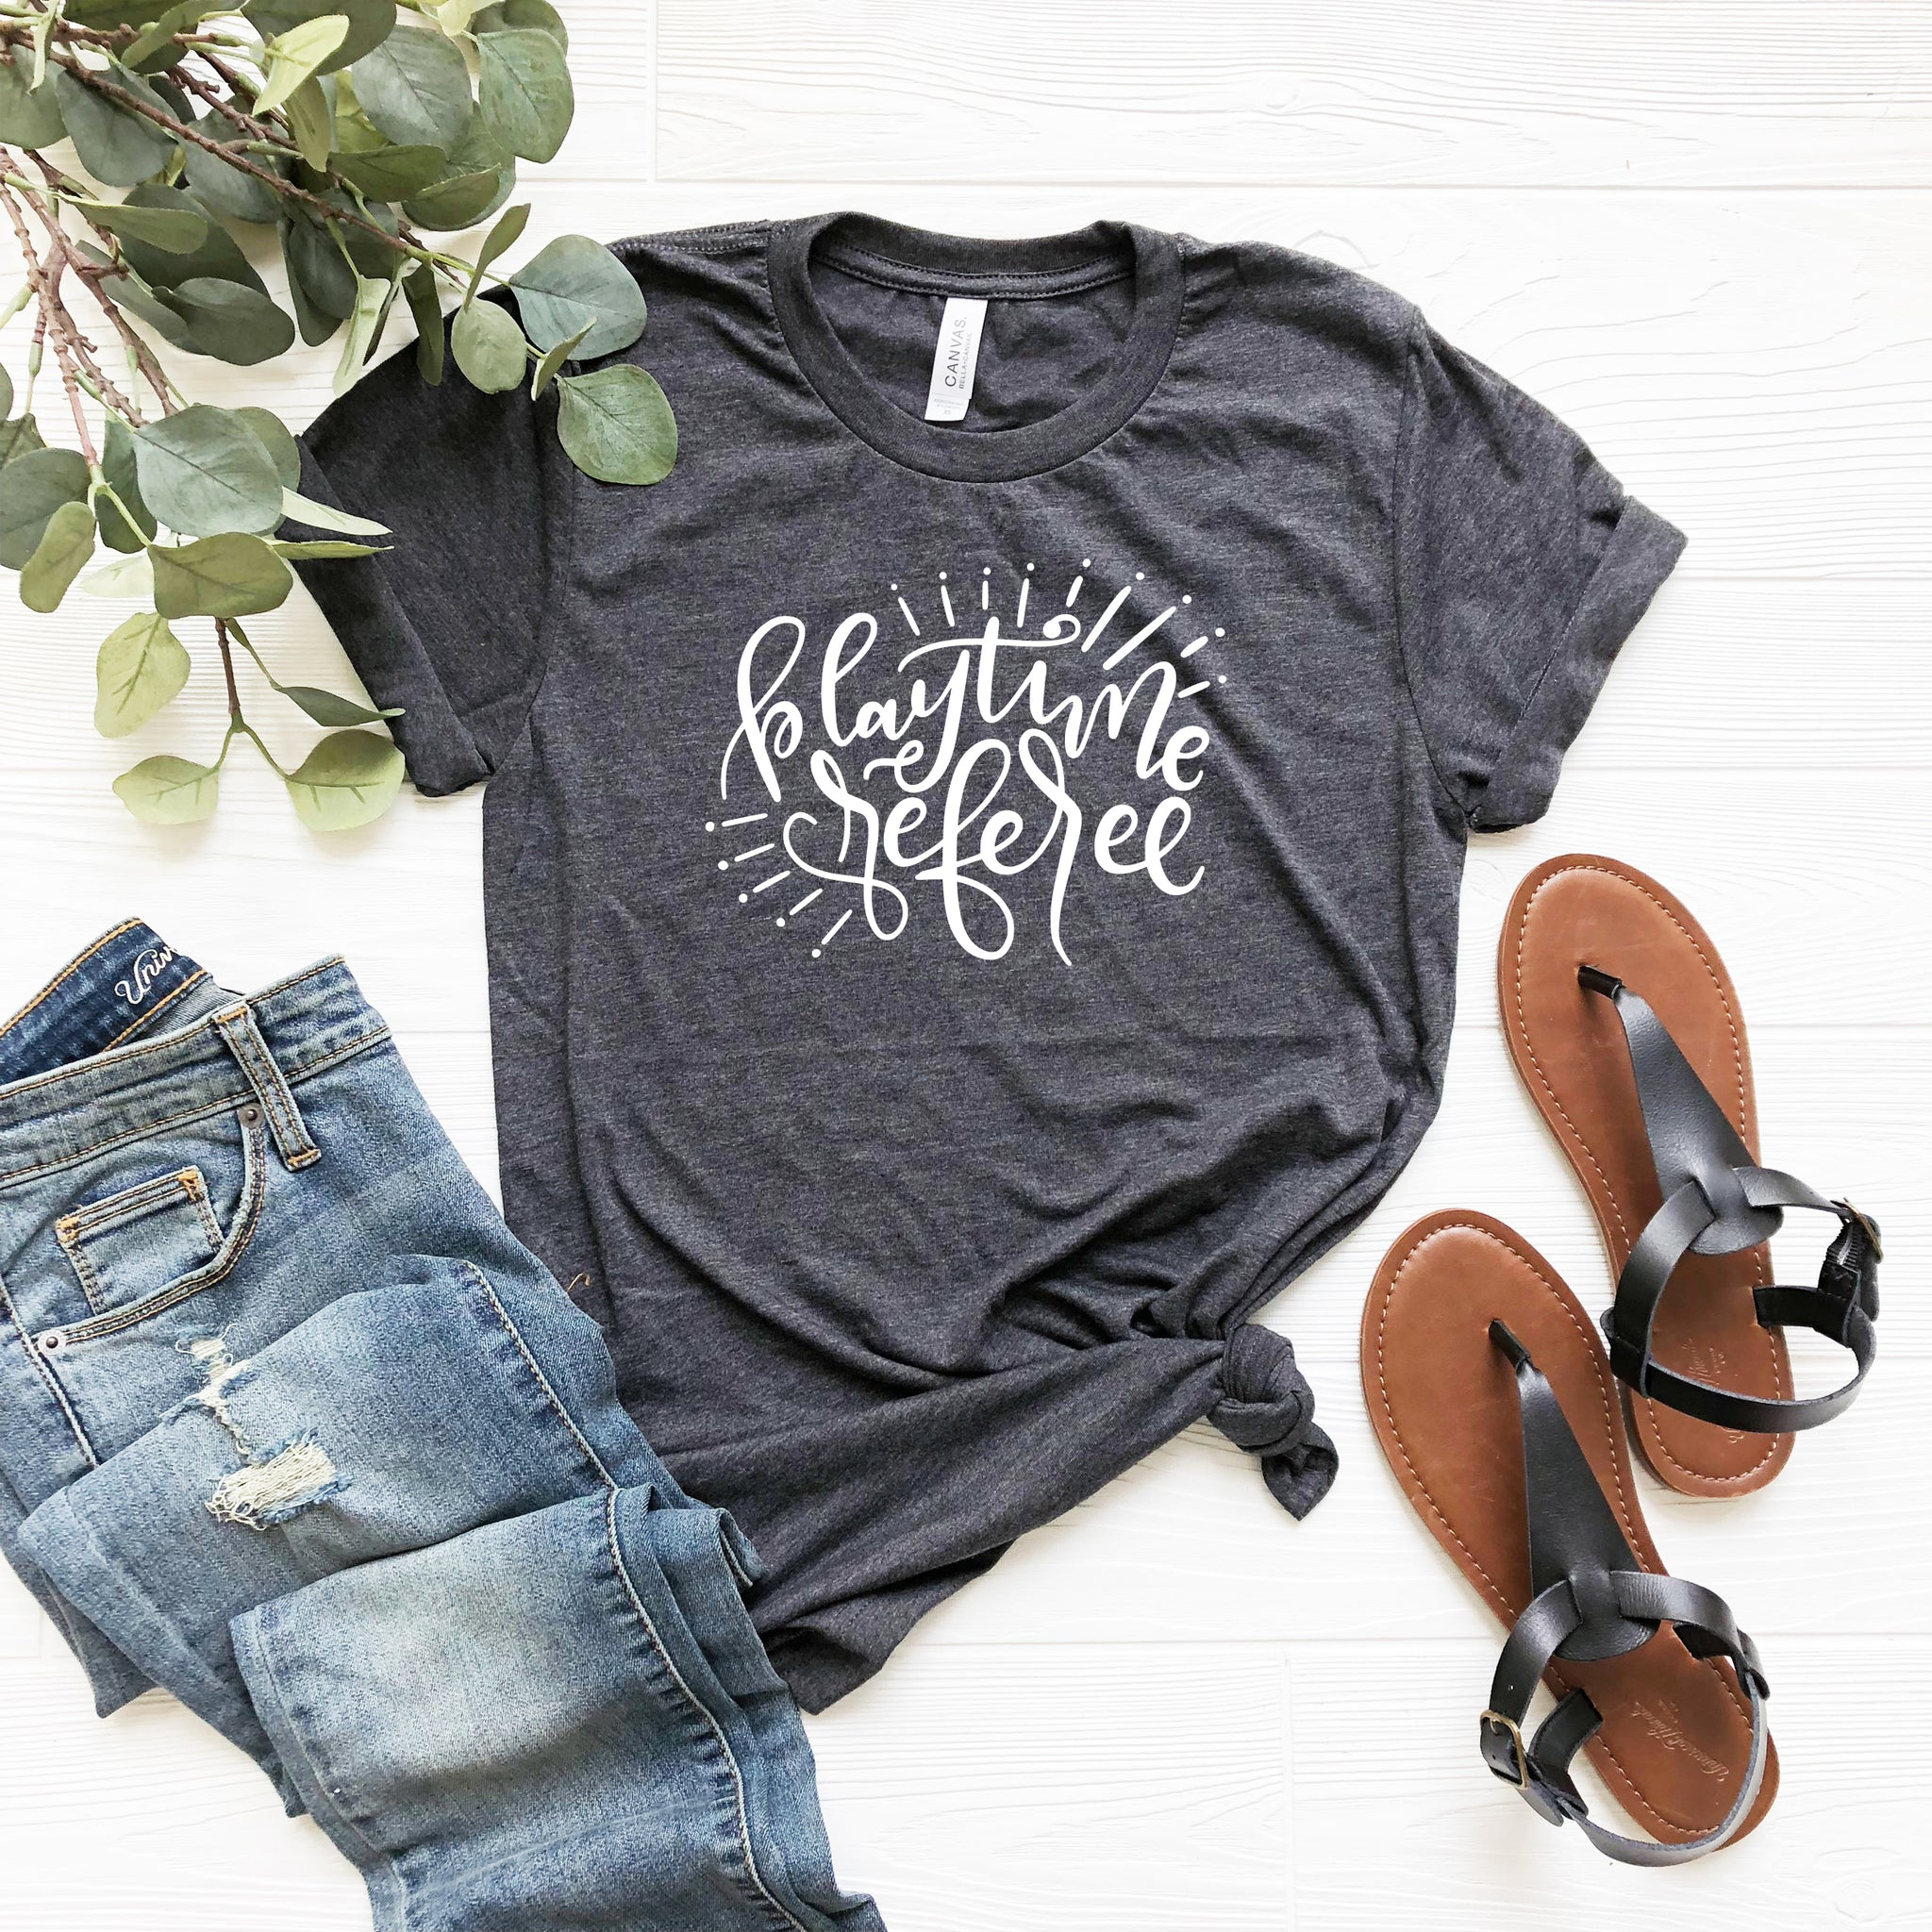 Playtime Referee T-Shirt - The Chaotically Creative Mom